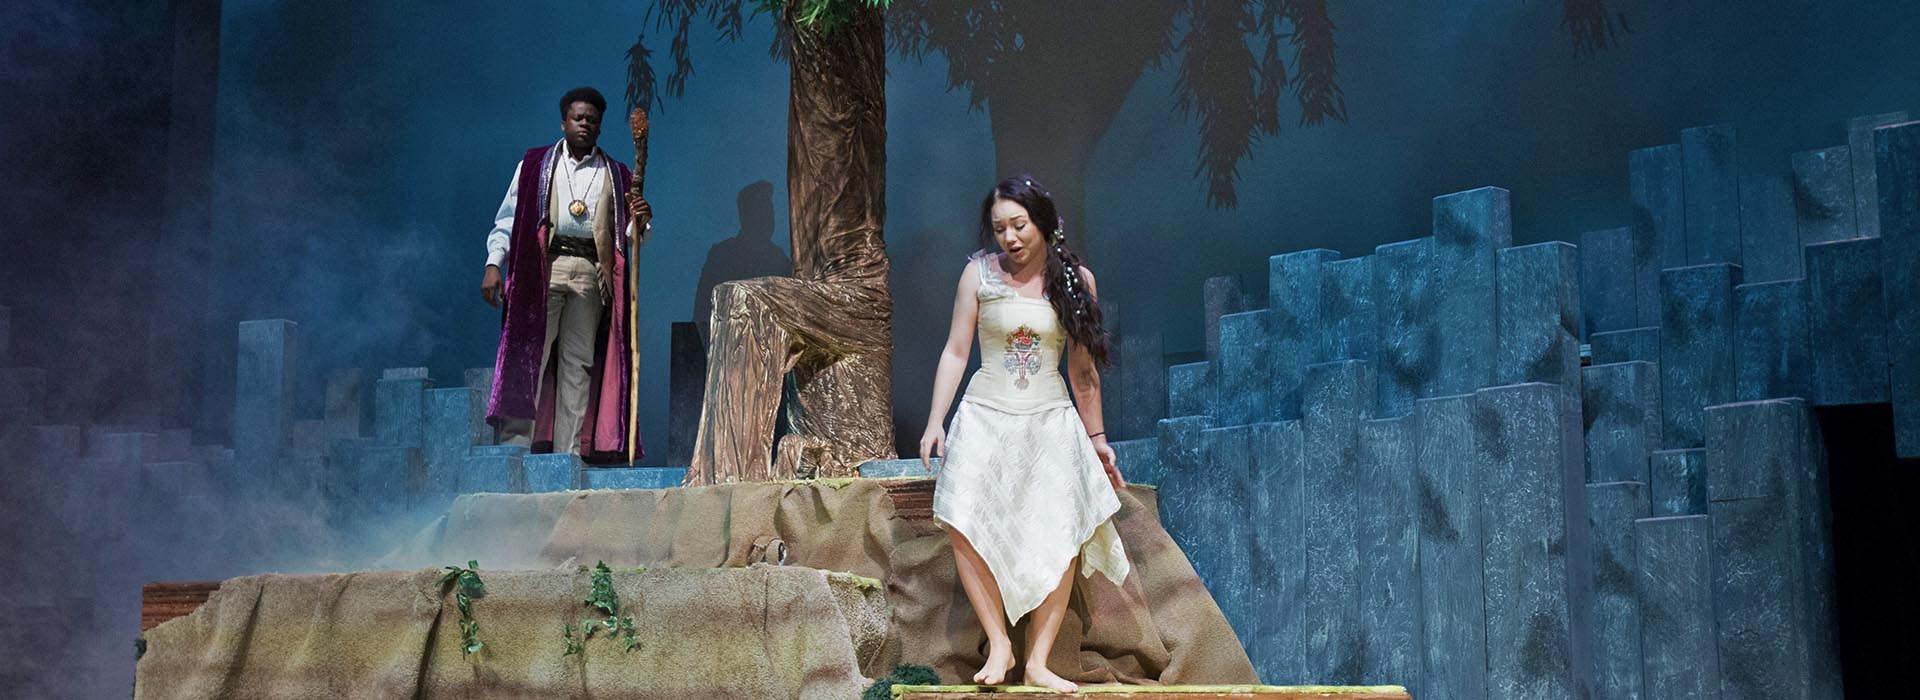 CSUSB Theatre Arts' production of 'The Tempest' concludes run this week